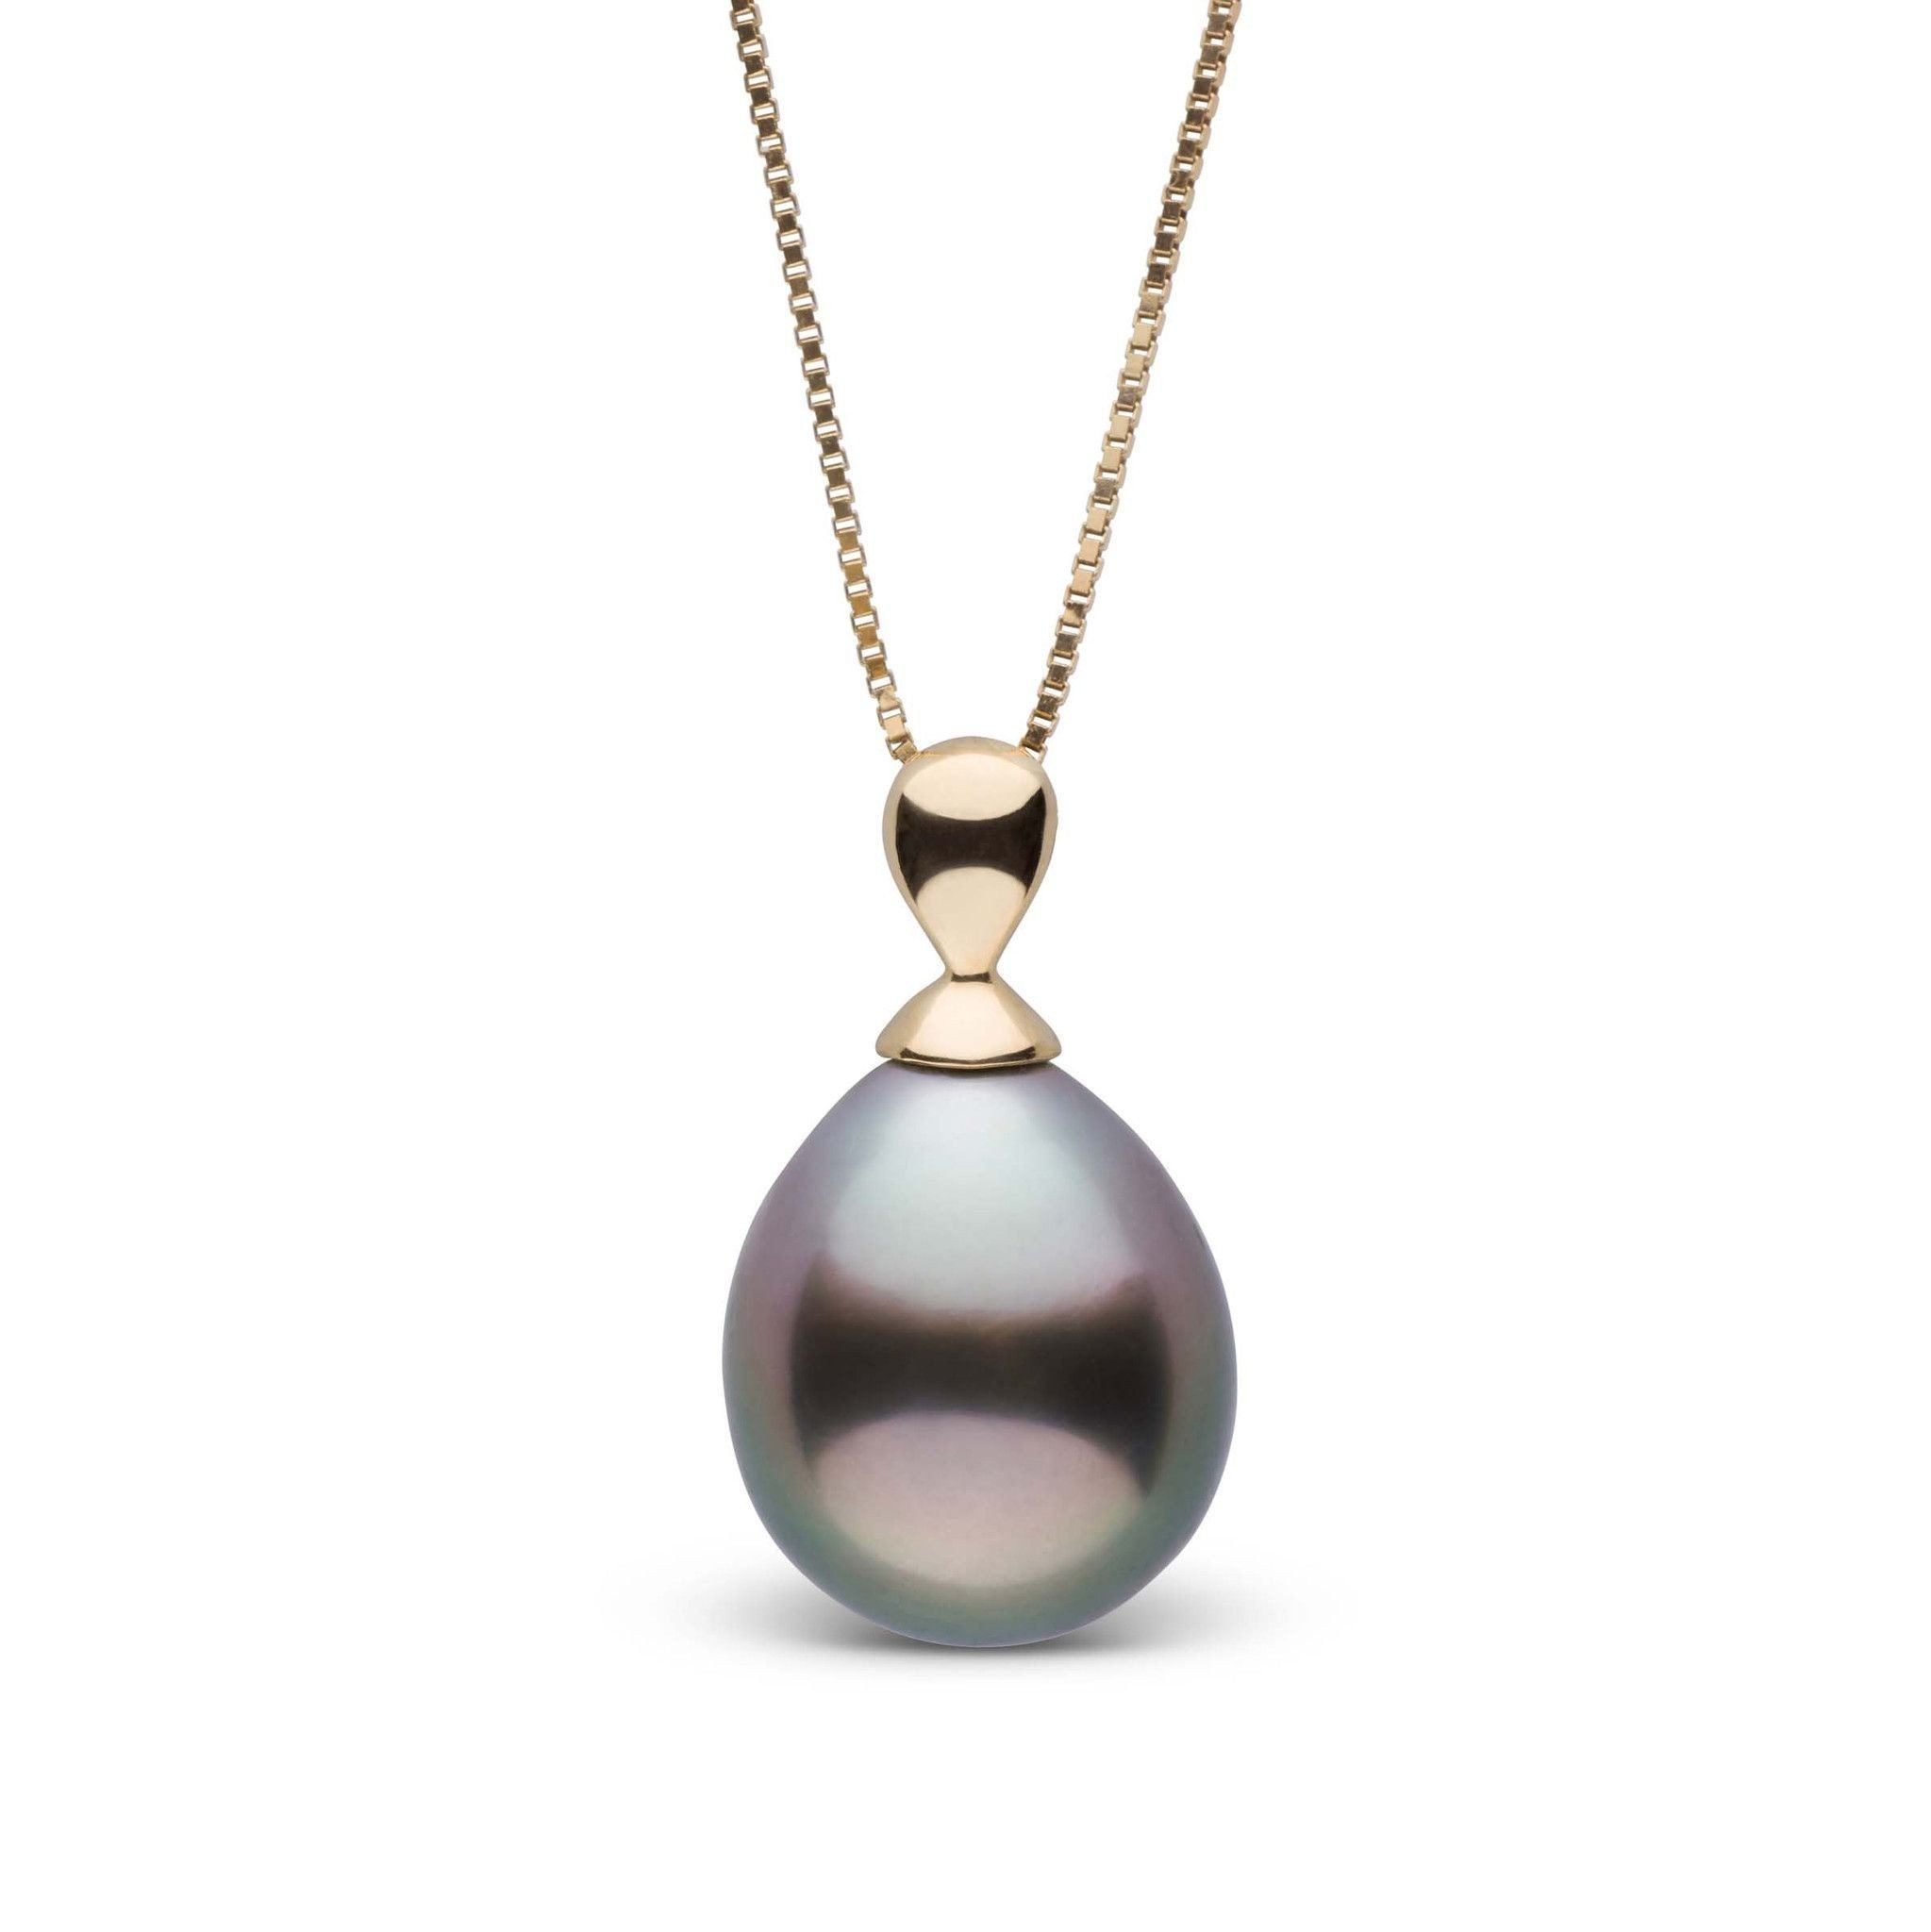 9.0-10.0 mm Dew Collection Tahitian Drop Pearl Pendant